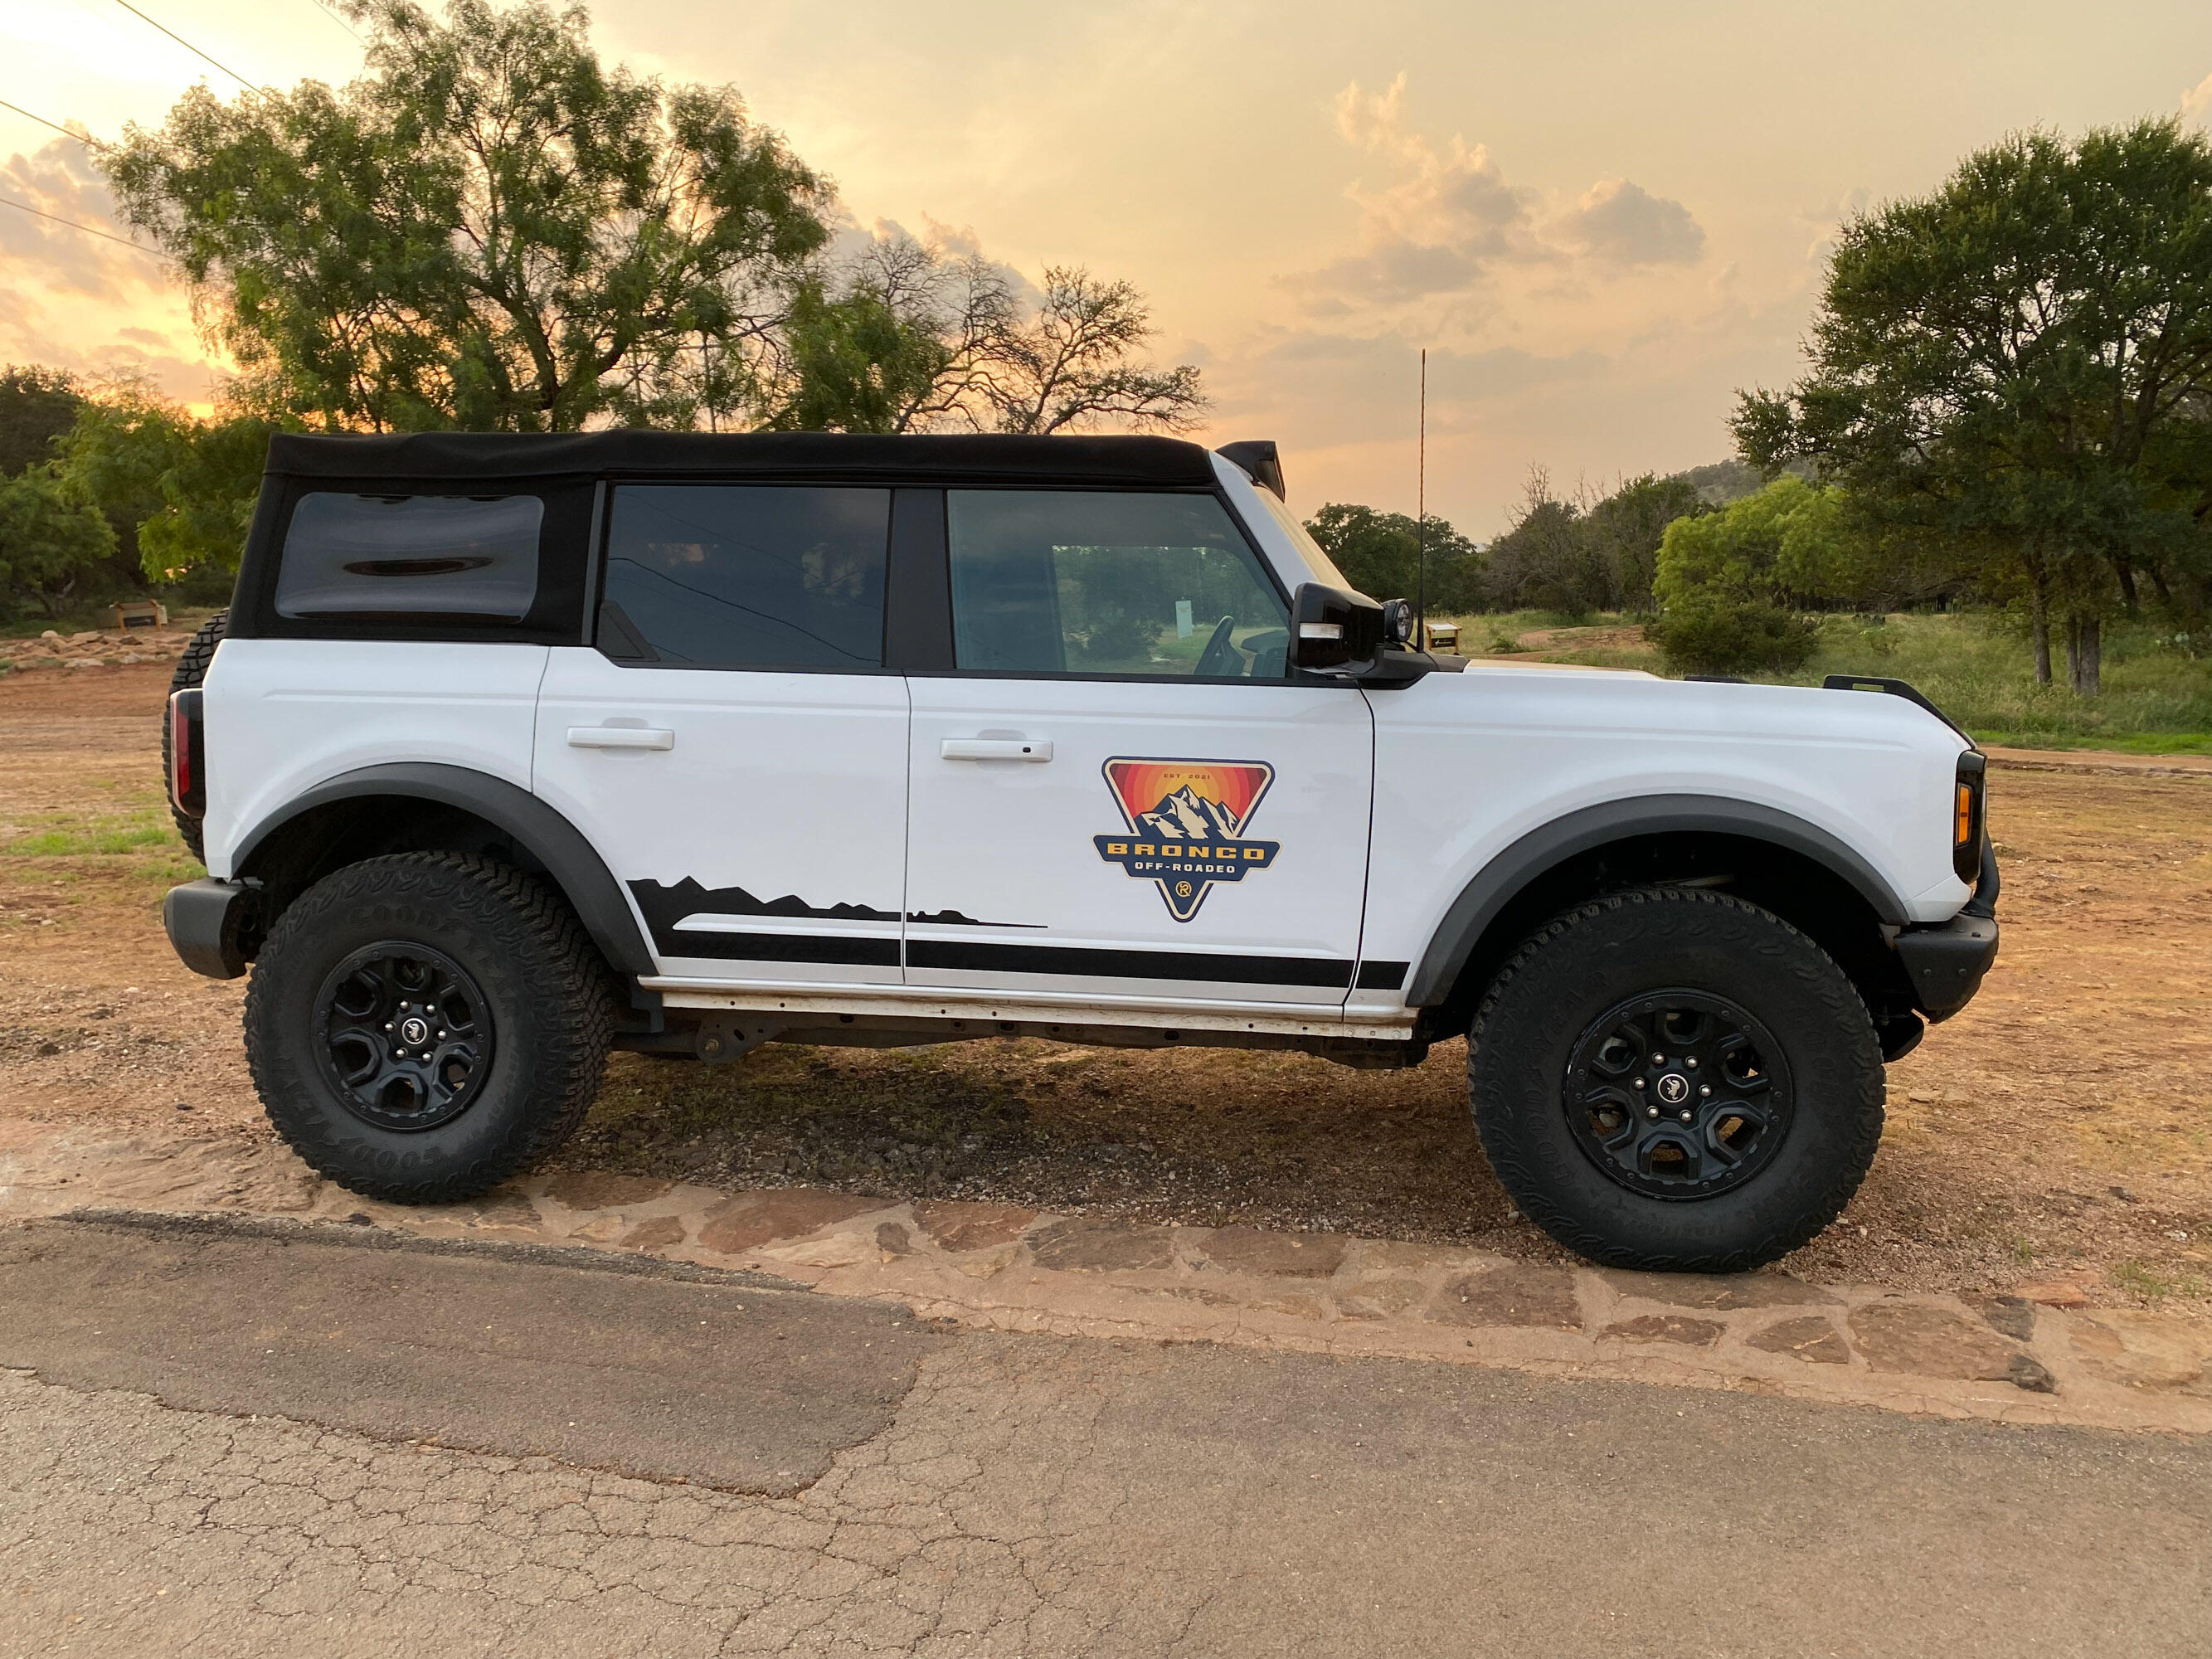 2021 Ford Bronco - white four-door soft top